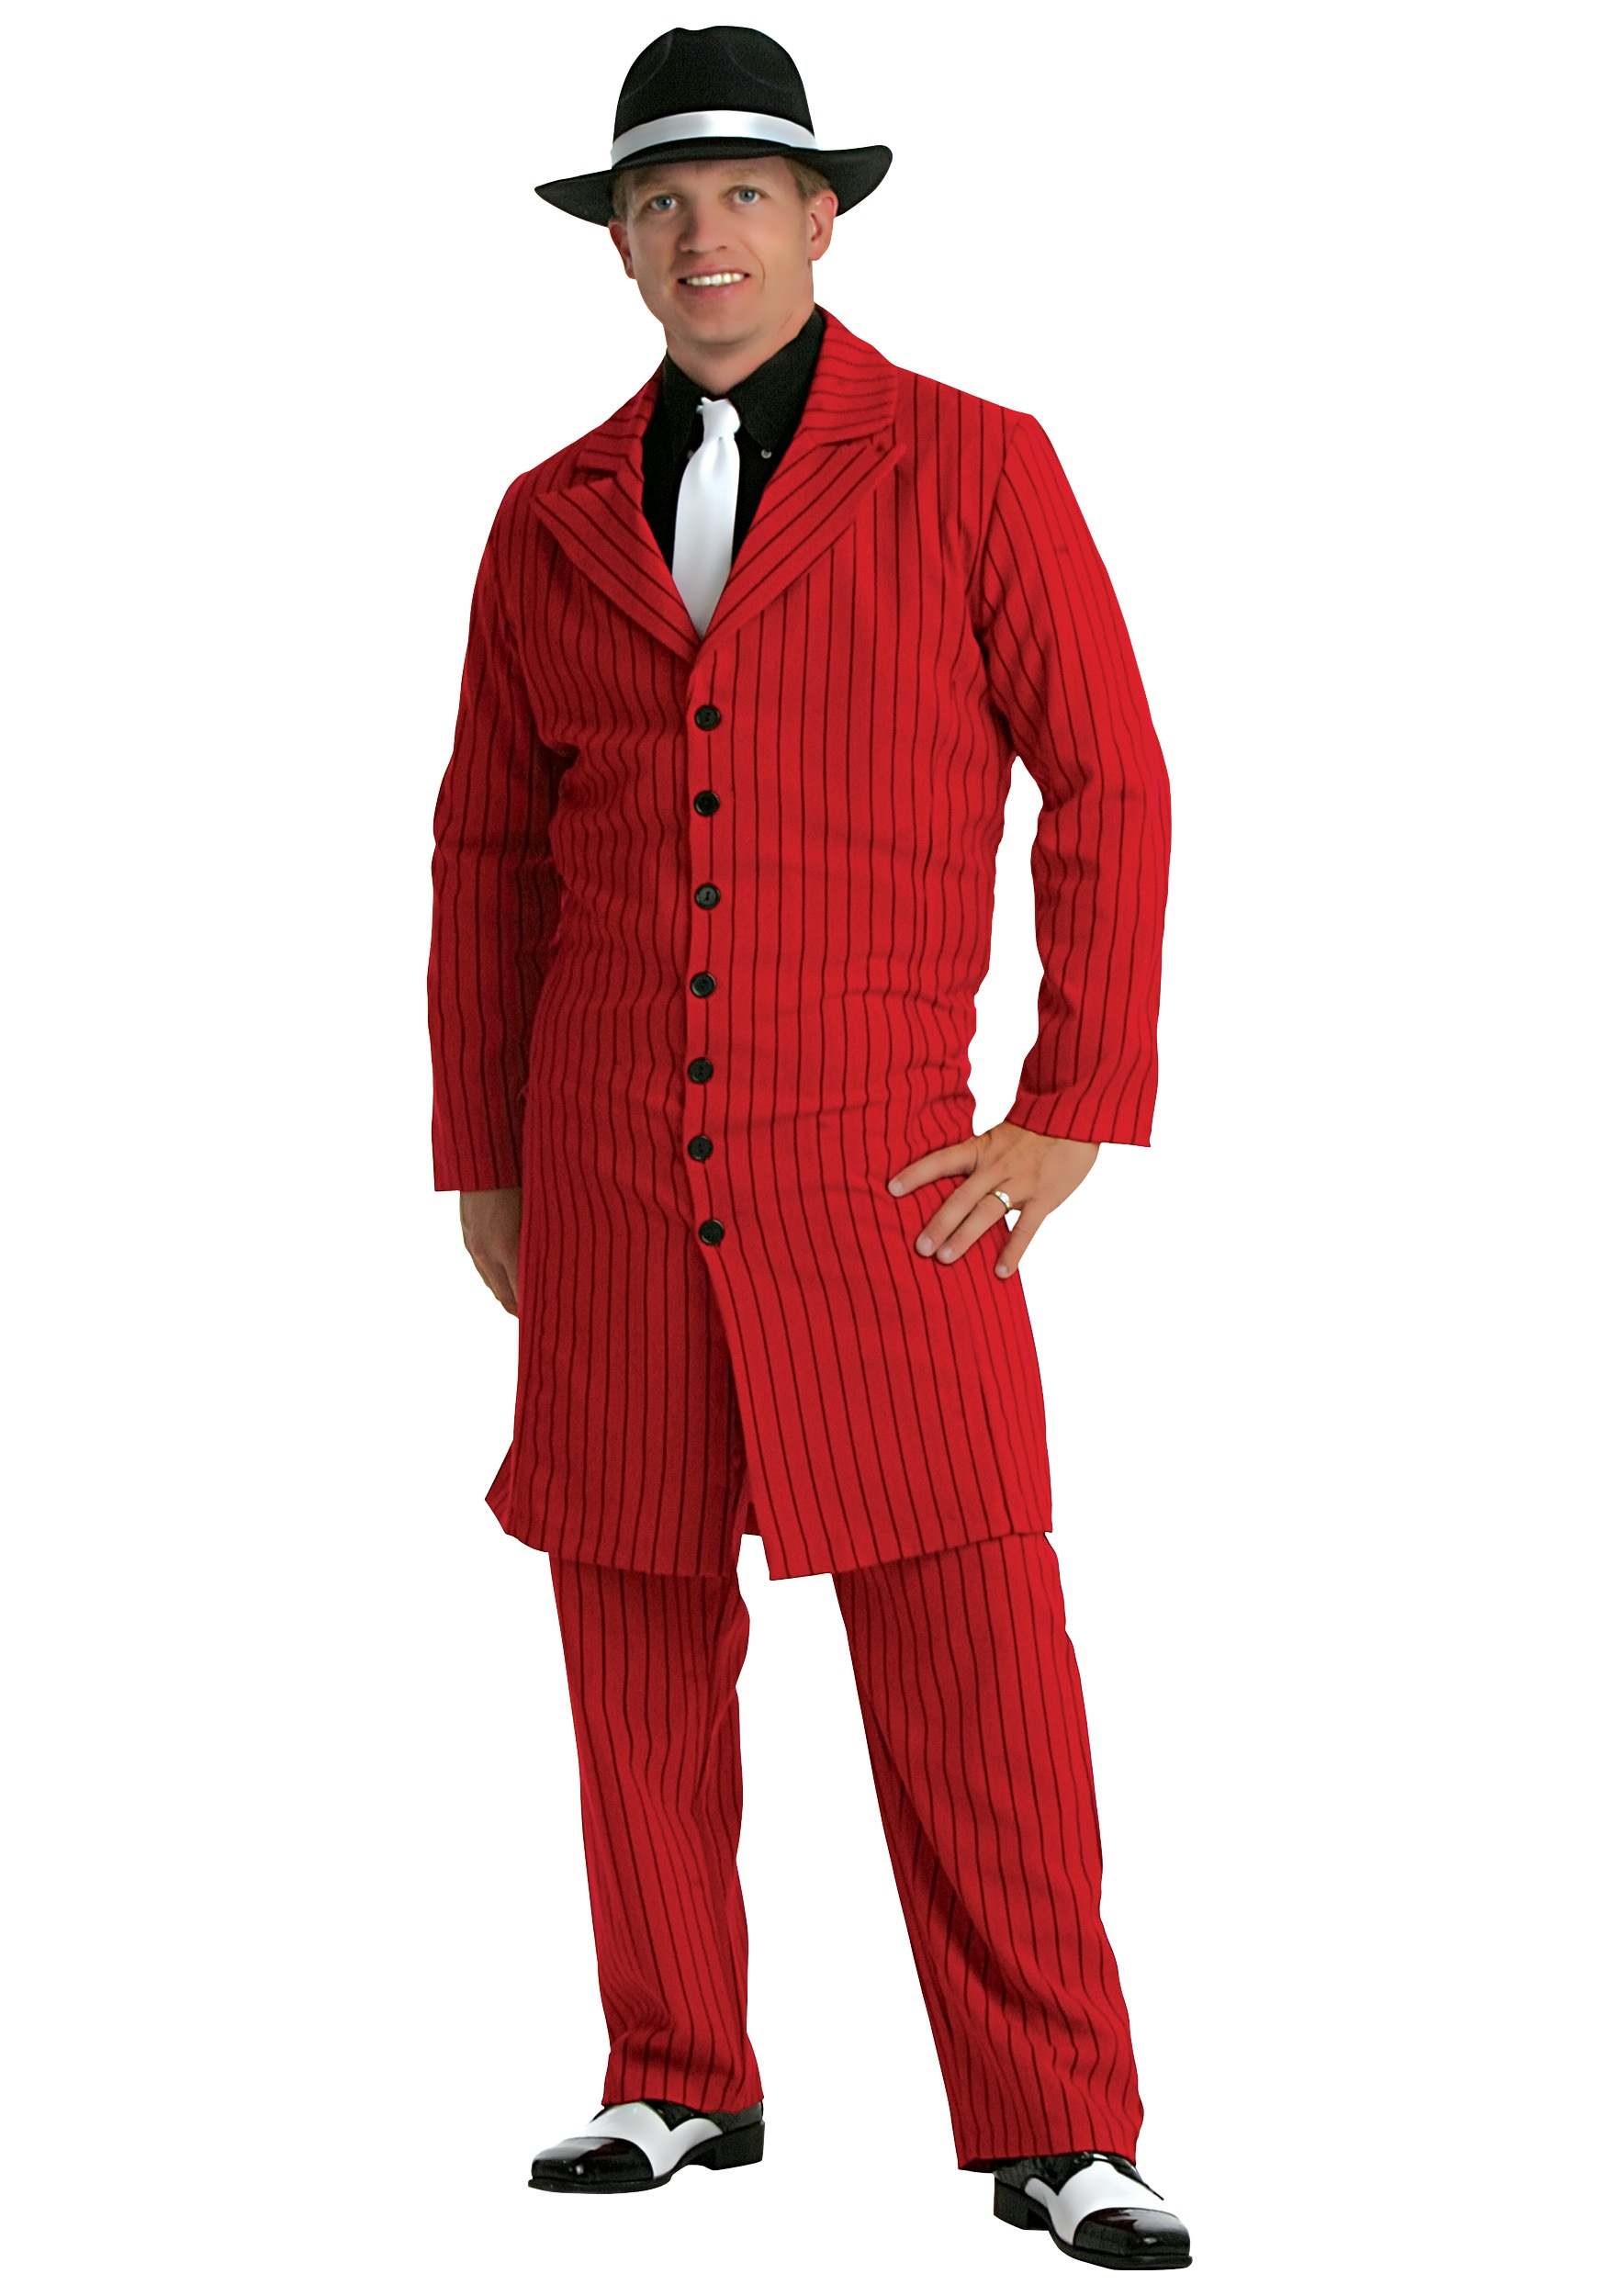 ca50ef3ffc4 Red Plus Size Zoot Suit - Adult 1920s Gangster Costumes